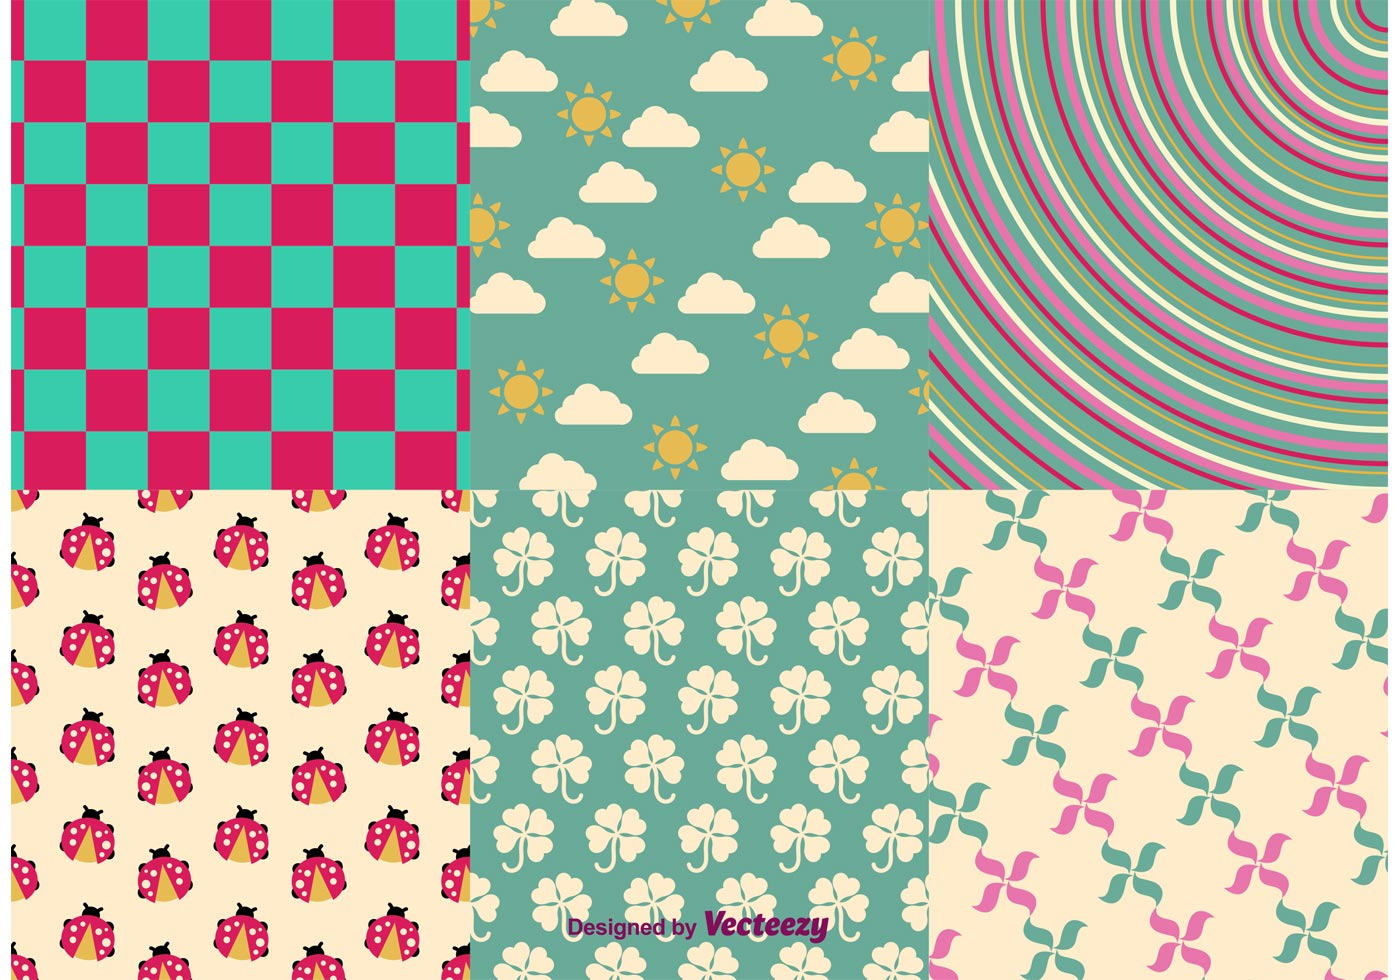 Spring and Summer Vector Patterns - Download Free Vector Art, Stock ...